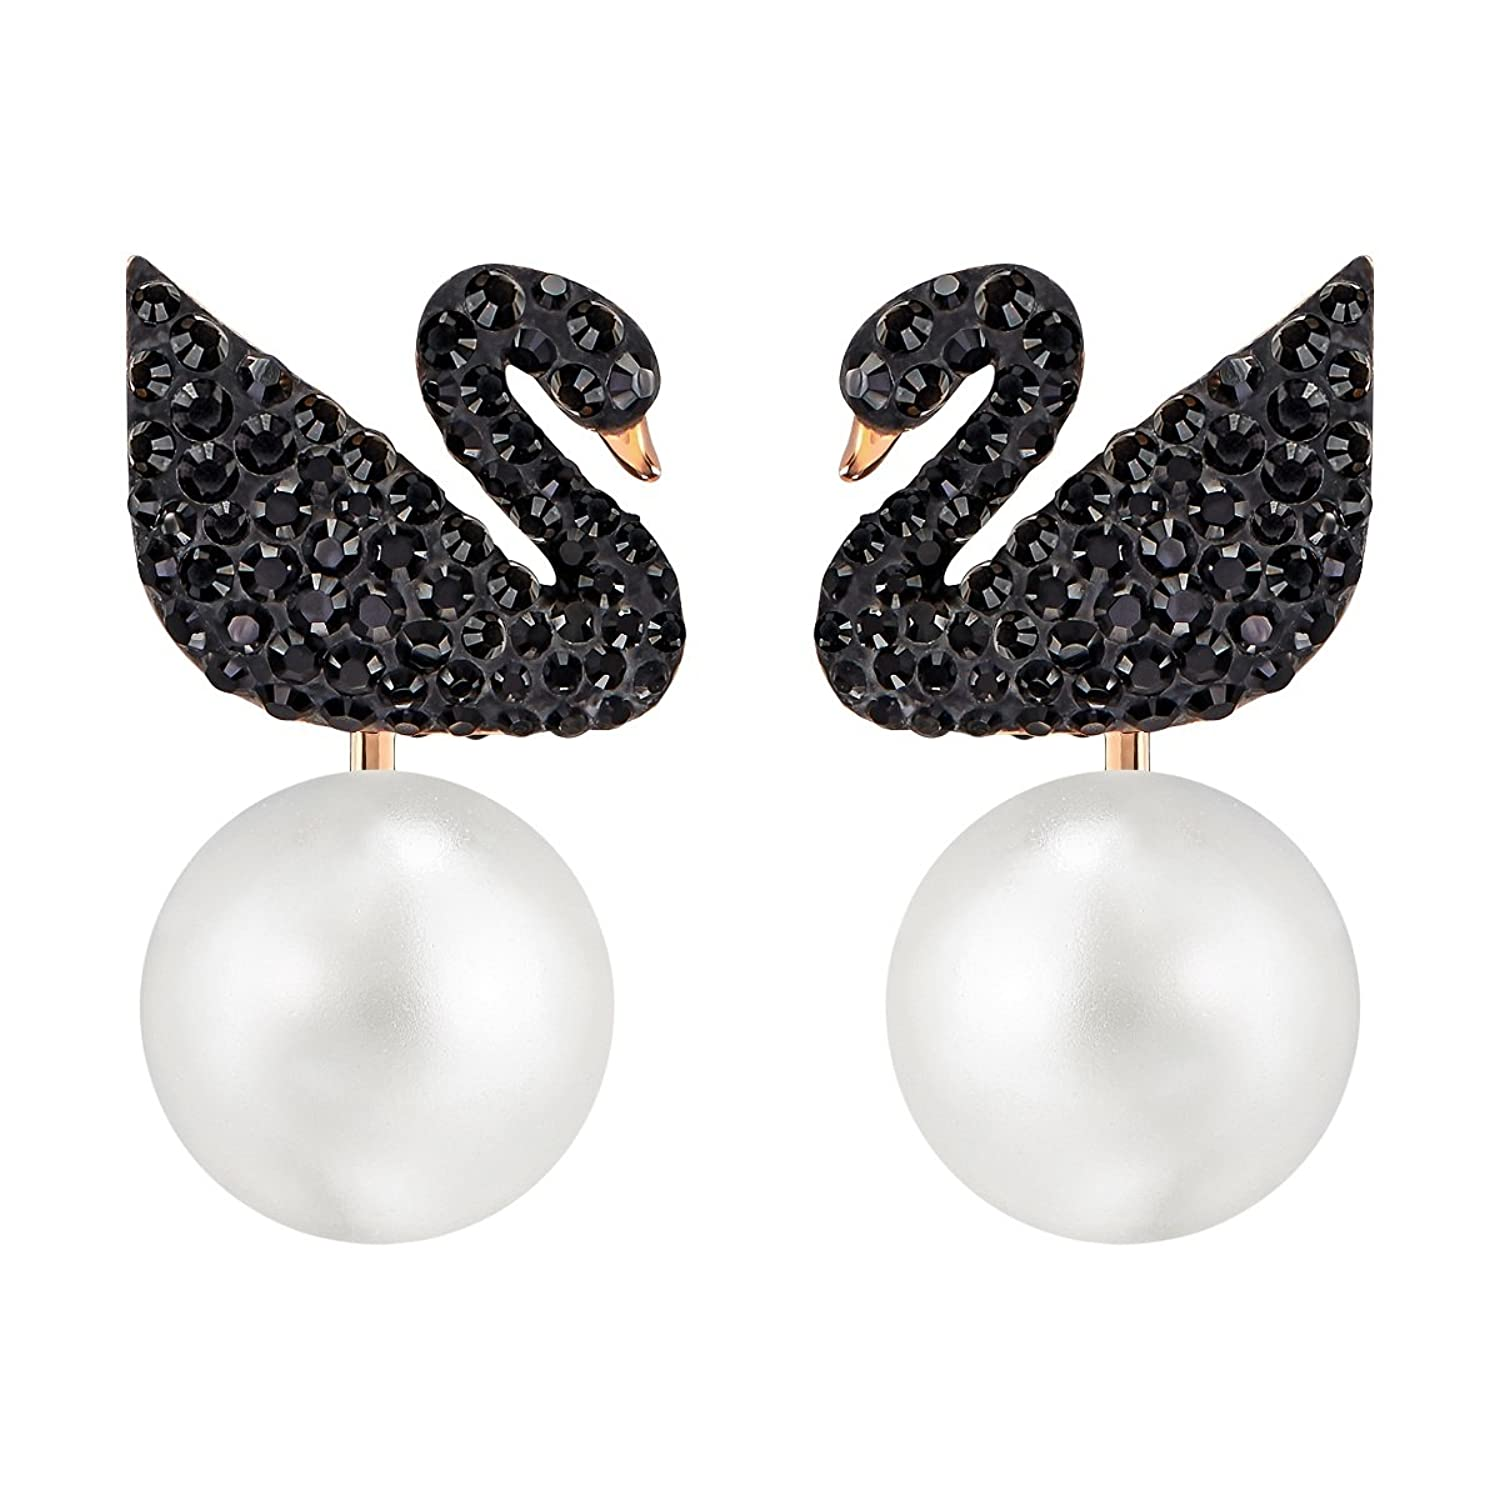 Swarovski Iconic Swan Earrings - 5193949